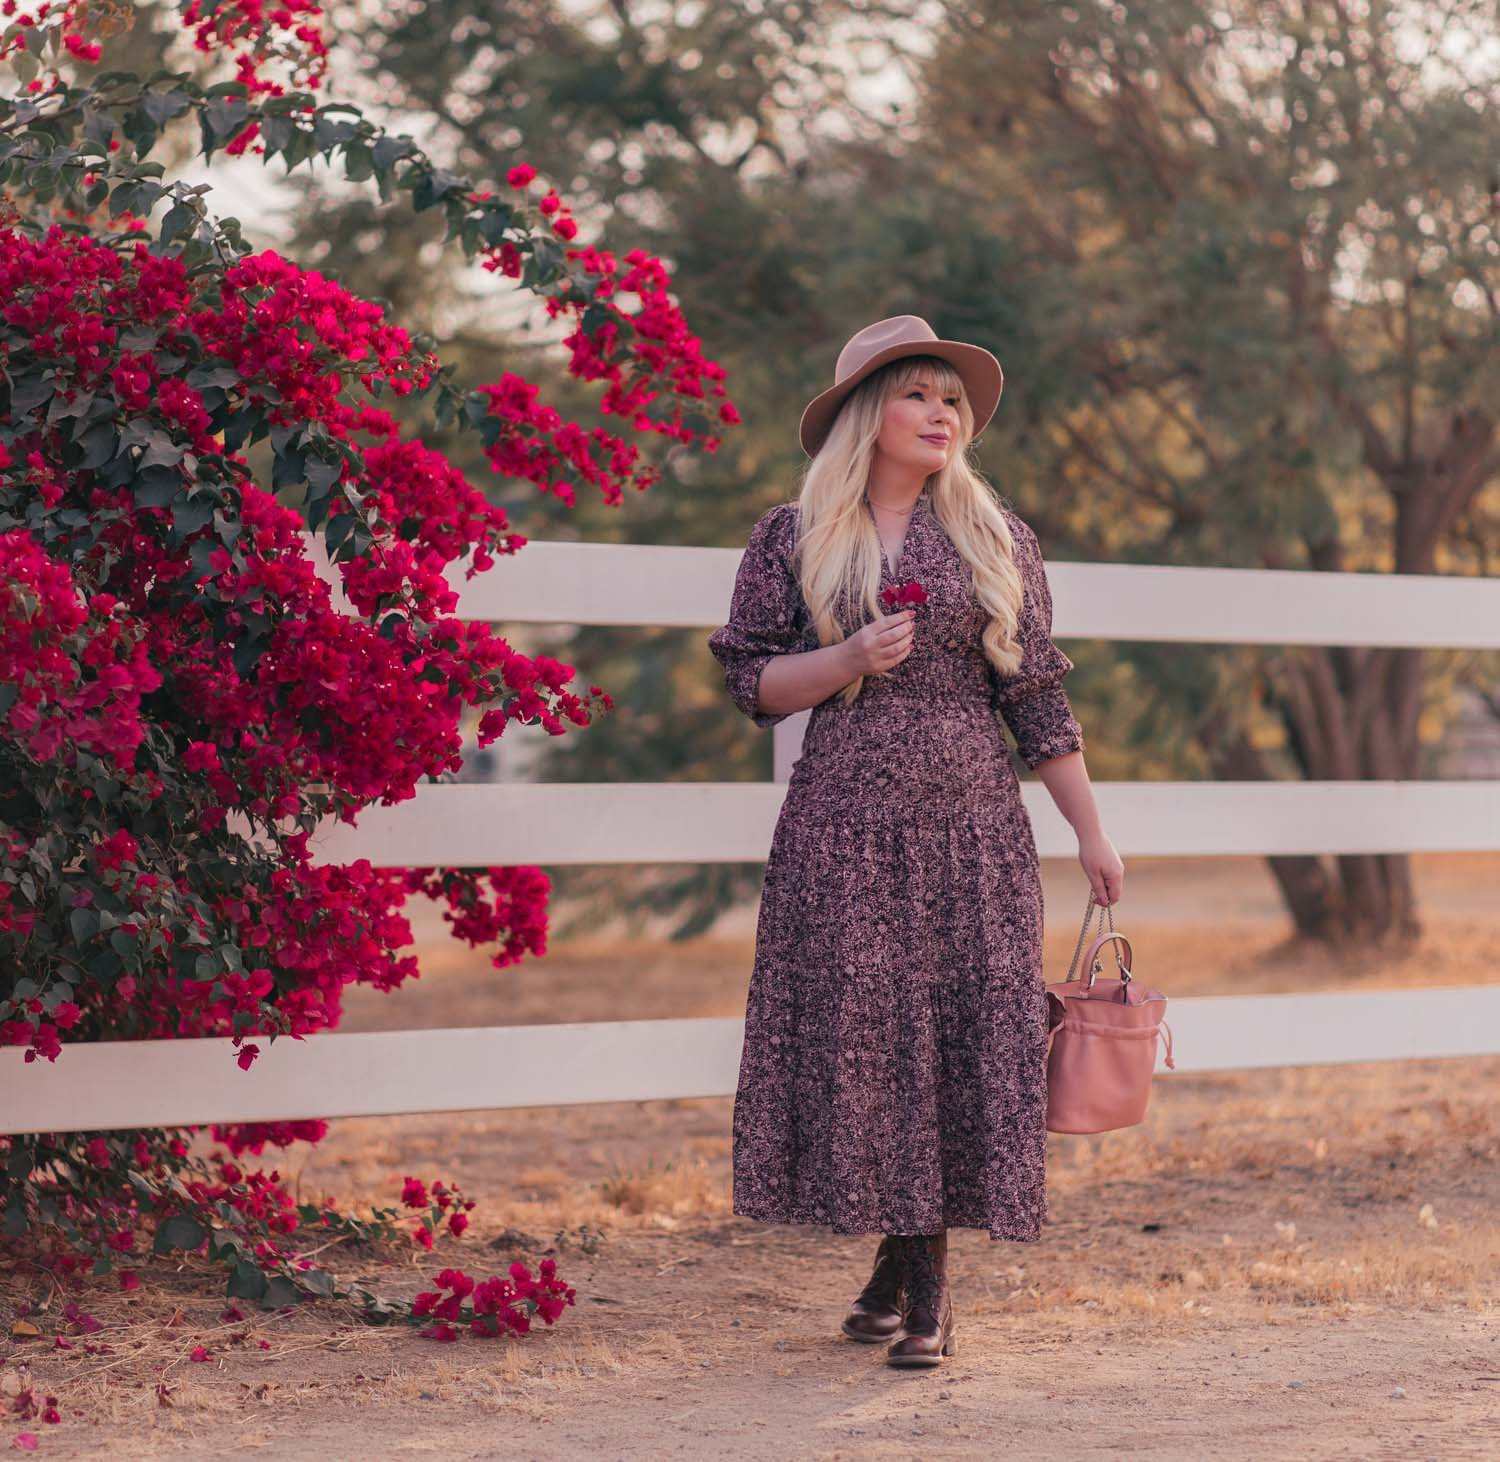 Fashion blogger Elizabeth Hugen of Lizzie in Lace share a Fall Prairie Dress Outfit Idea including a BASH dress